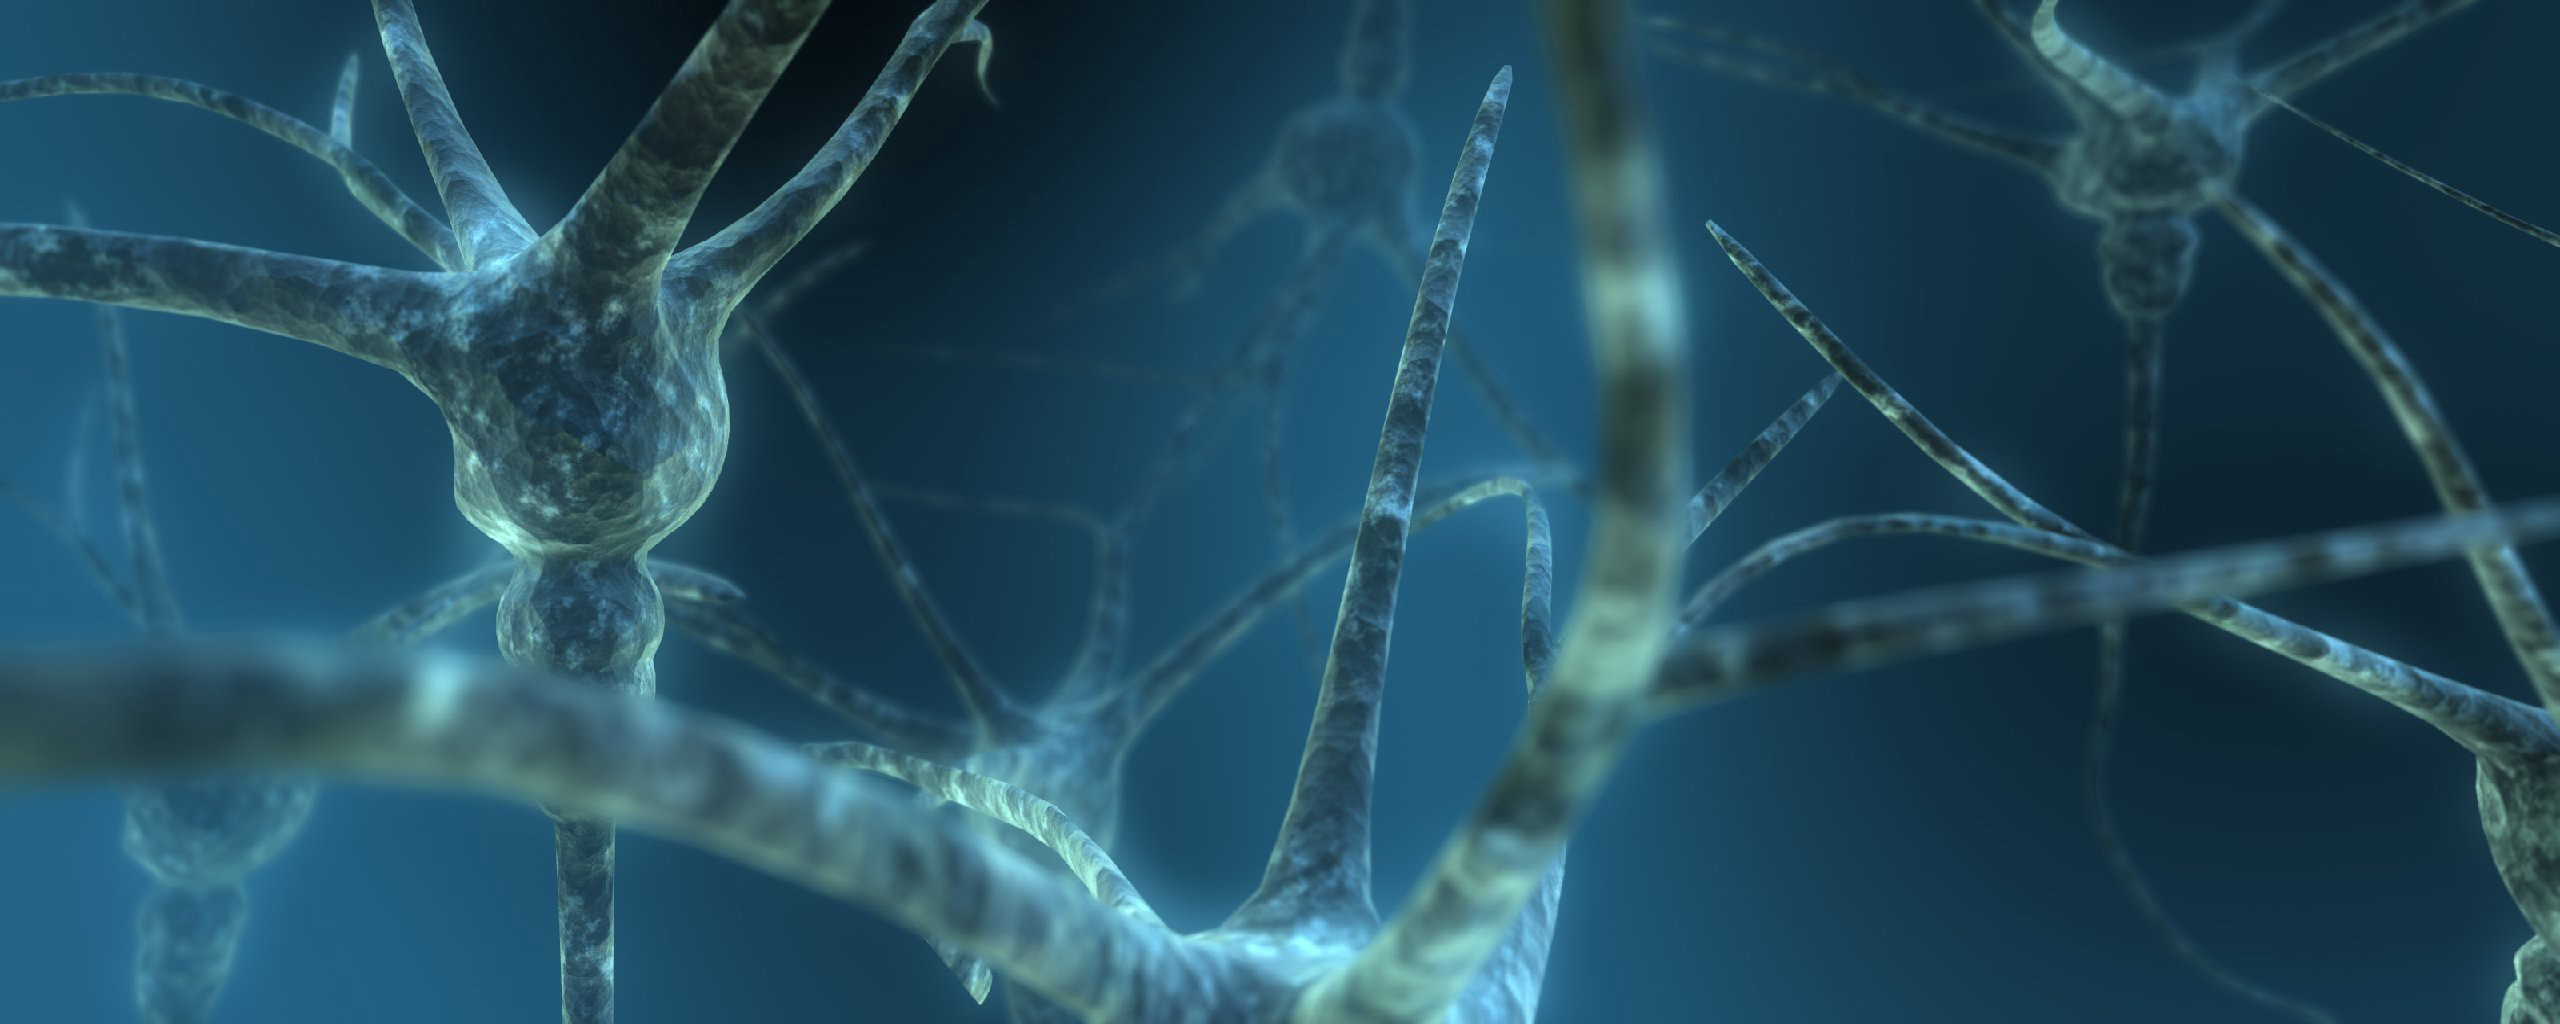 How to Build a Neuron: Exploring AI in JavaScript Pt 2